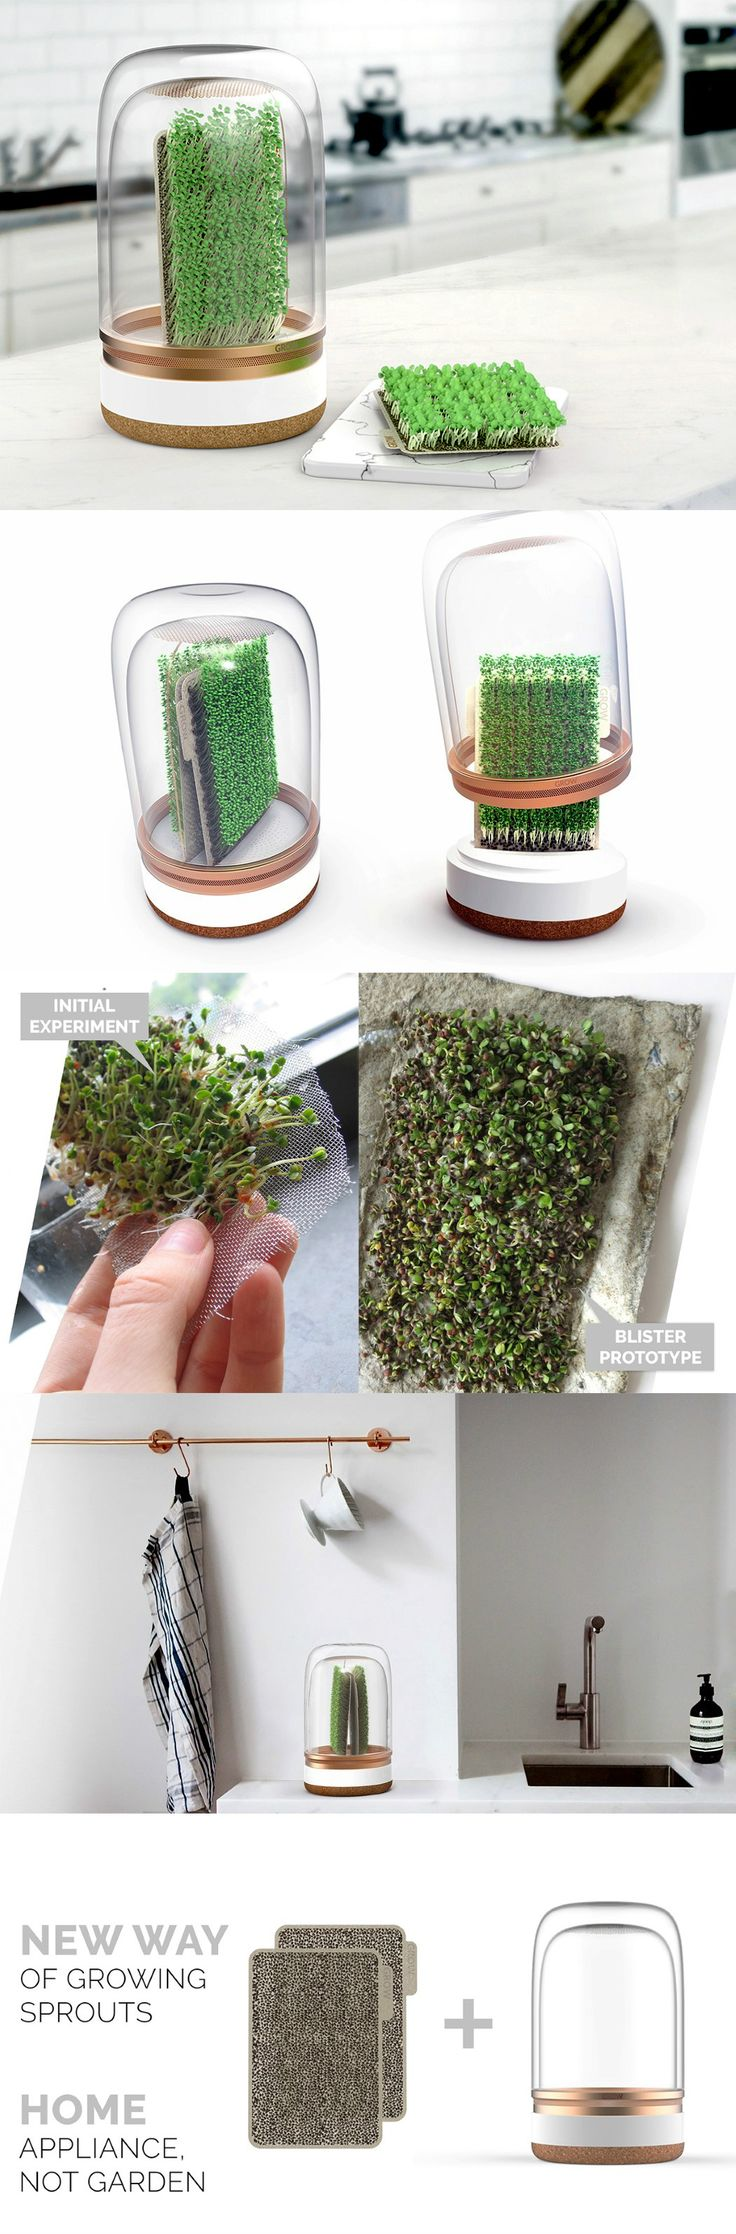 This isn't a planter. You've been warned. The 'Grow' is much more complex than that. Designer Malgorzata Blachnicka compares it to a kitchen tool/appliance, much like a bread knife, or a blender. Read Full Story at Yanko Design`